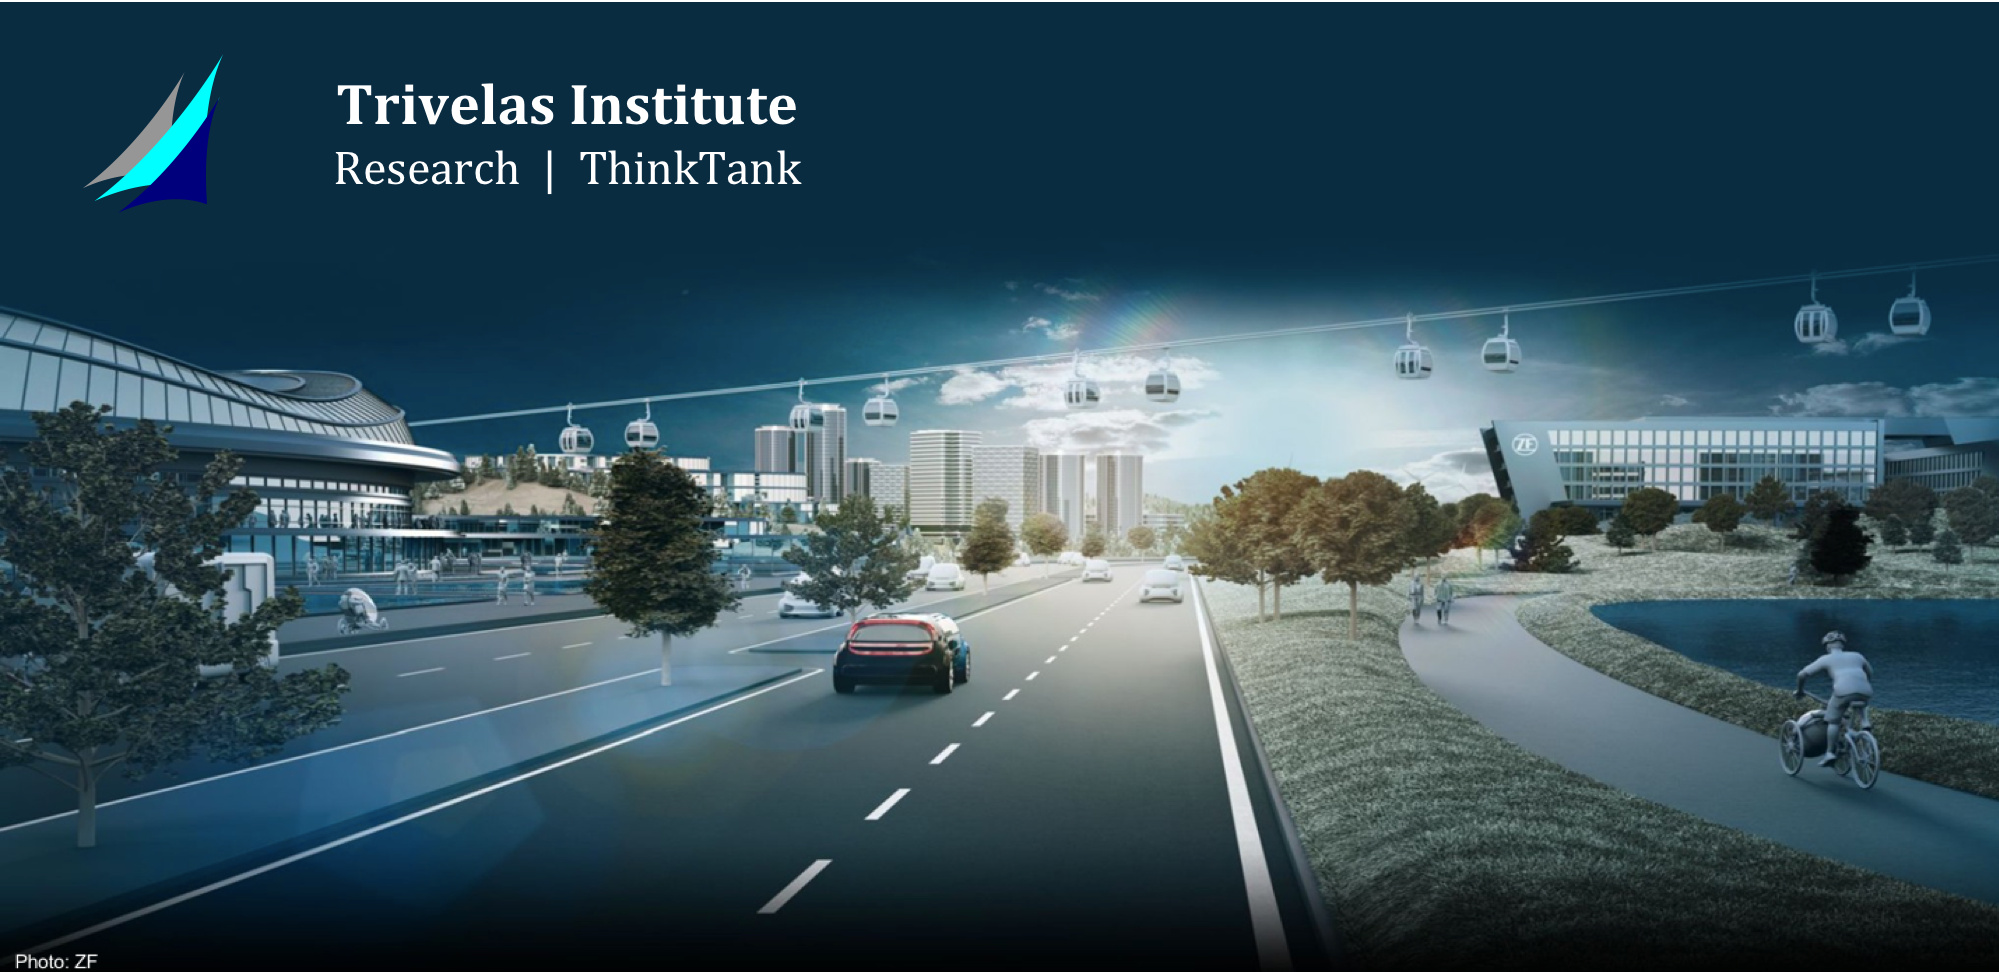 Trivelas Research Institute and ThinkTank